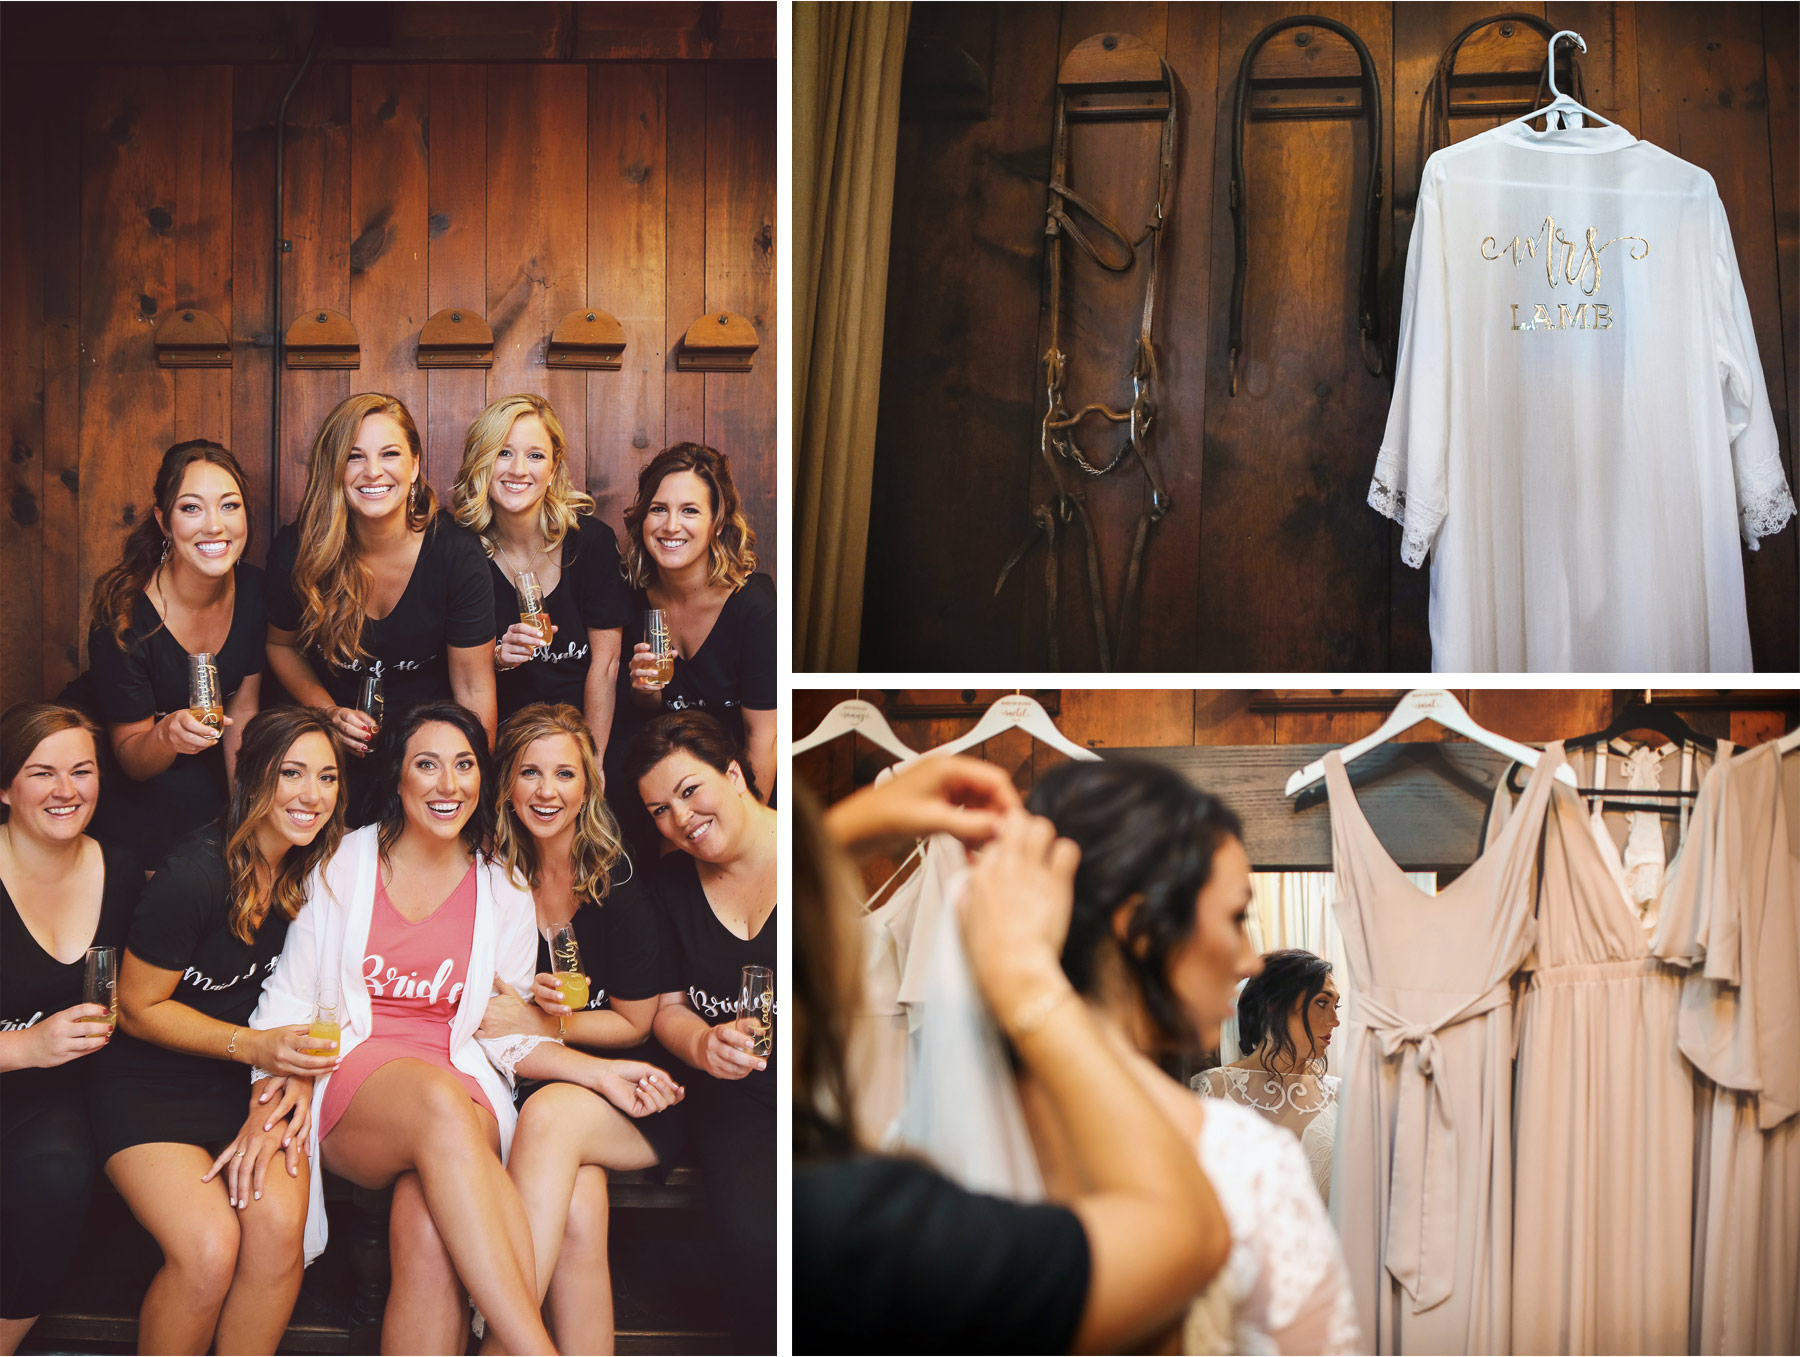 02-Vick-Photography-Rochester-Minnesota-Mayowood-Stone-Barn-Country-Wedding-Dress-Bridesmaids-Bride-Lizz-and-Brady.jpg